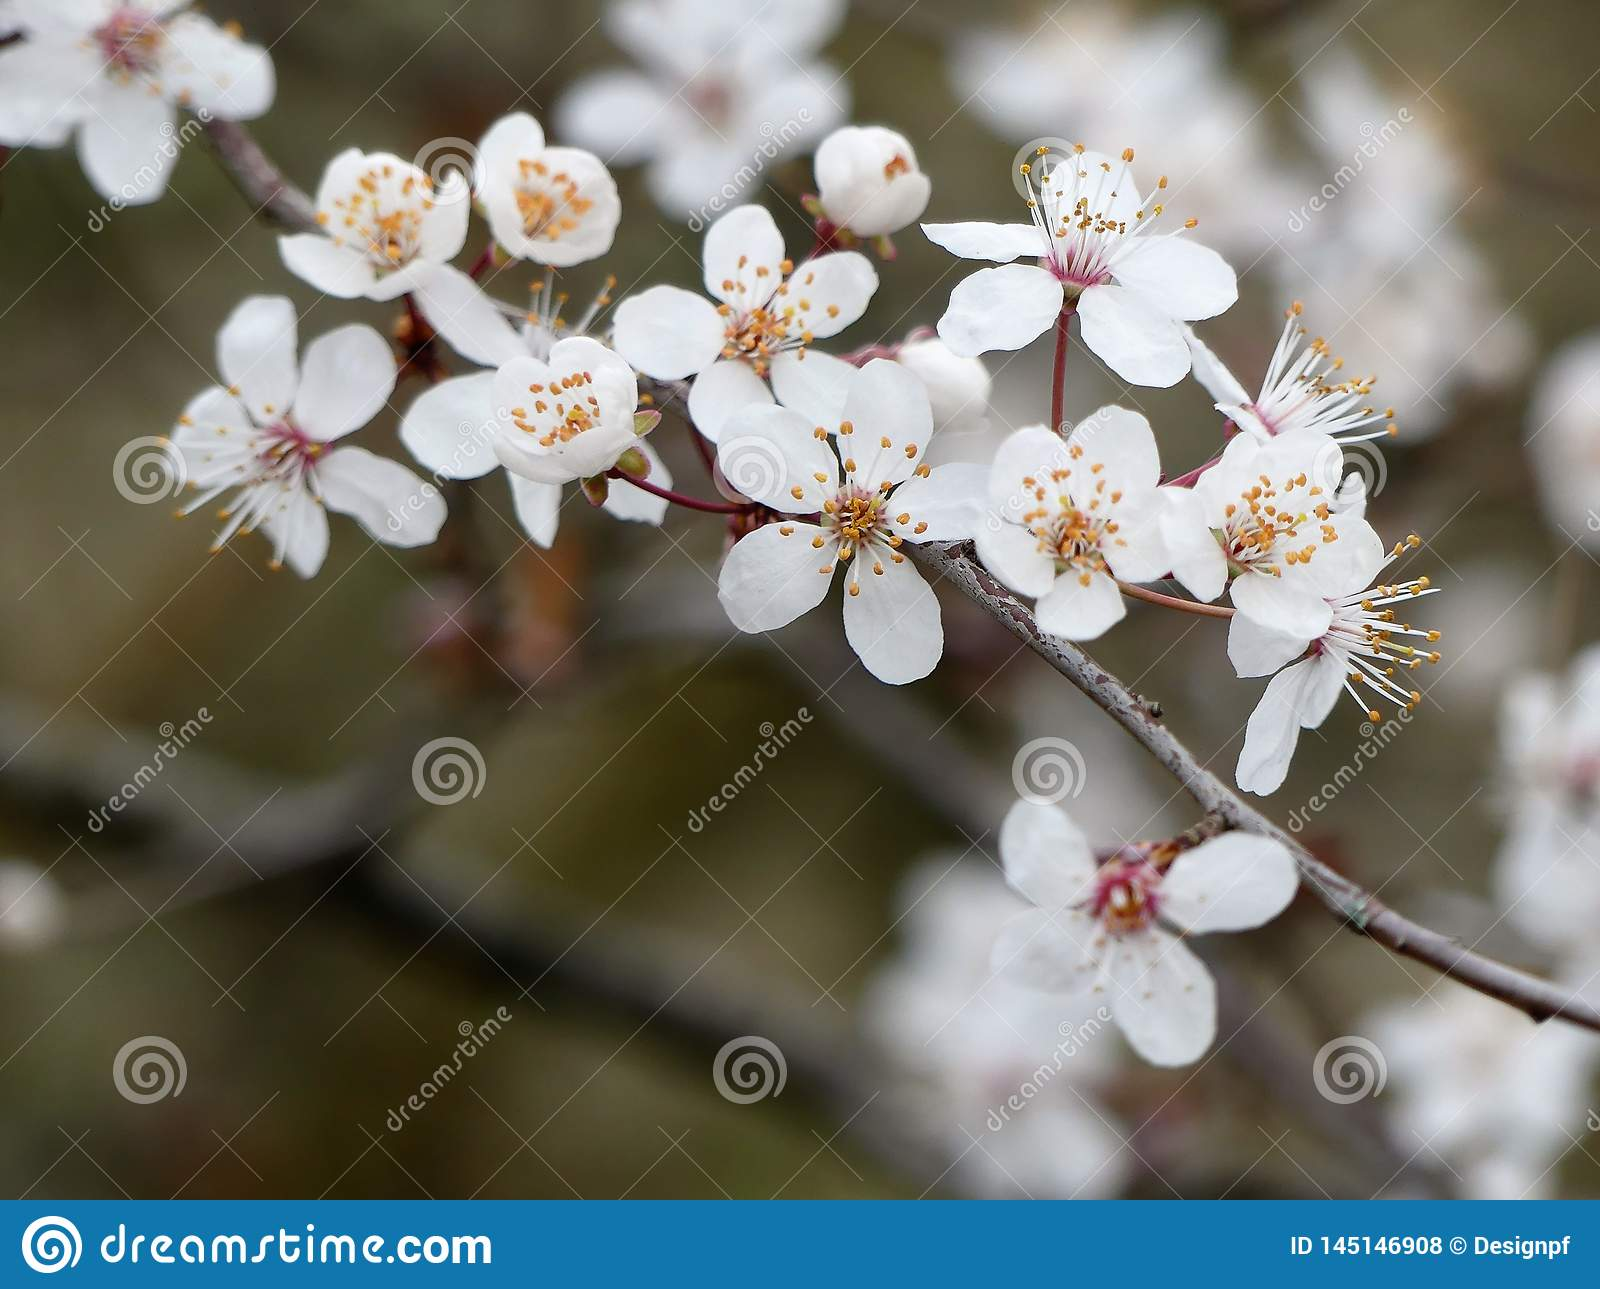 Close-up of beautiful white cherry blossom in springtime